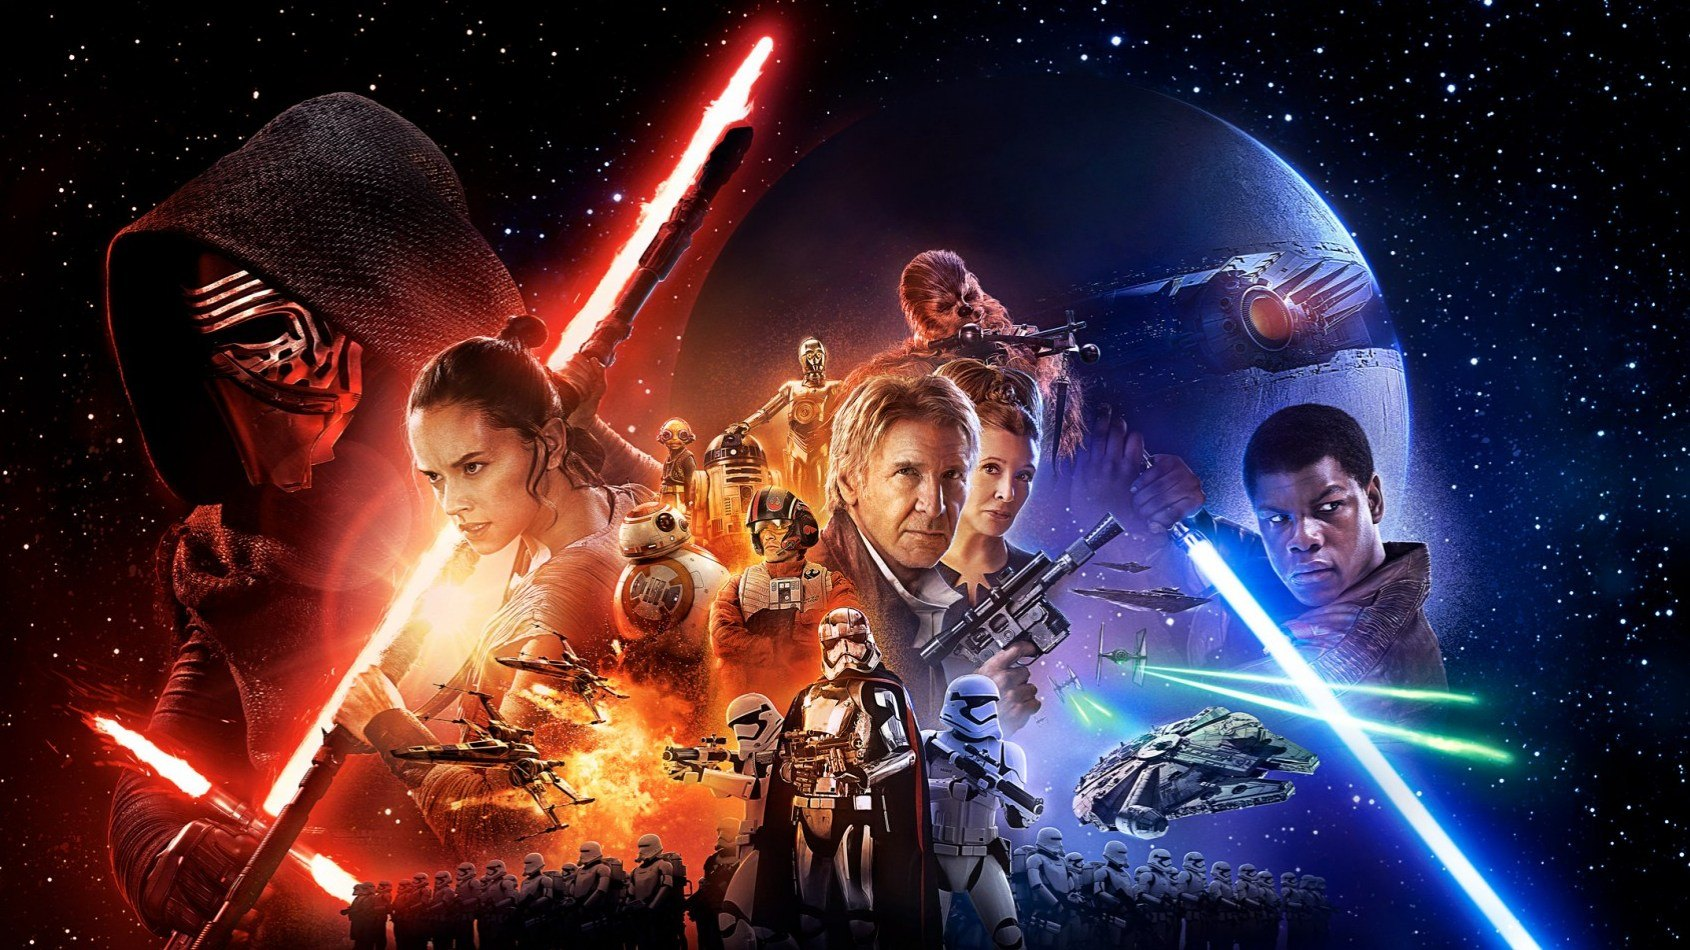 L'affiche officielle de Star Wars : Le Réveil de la Force